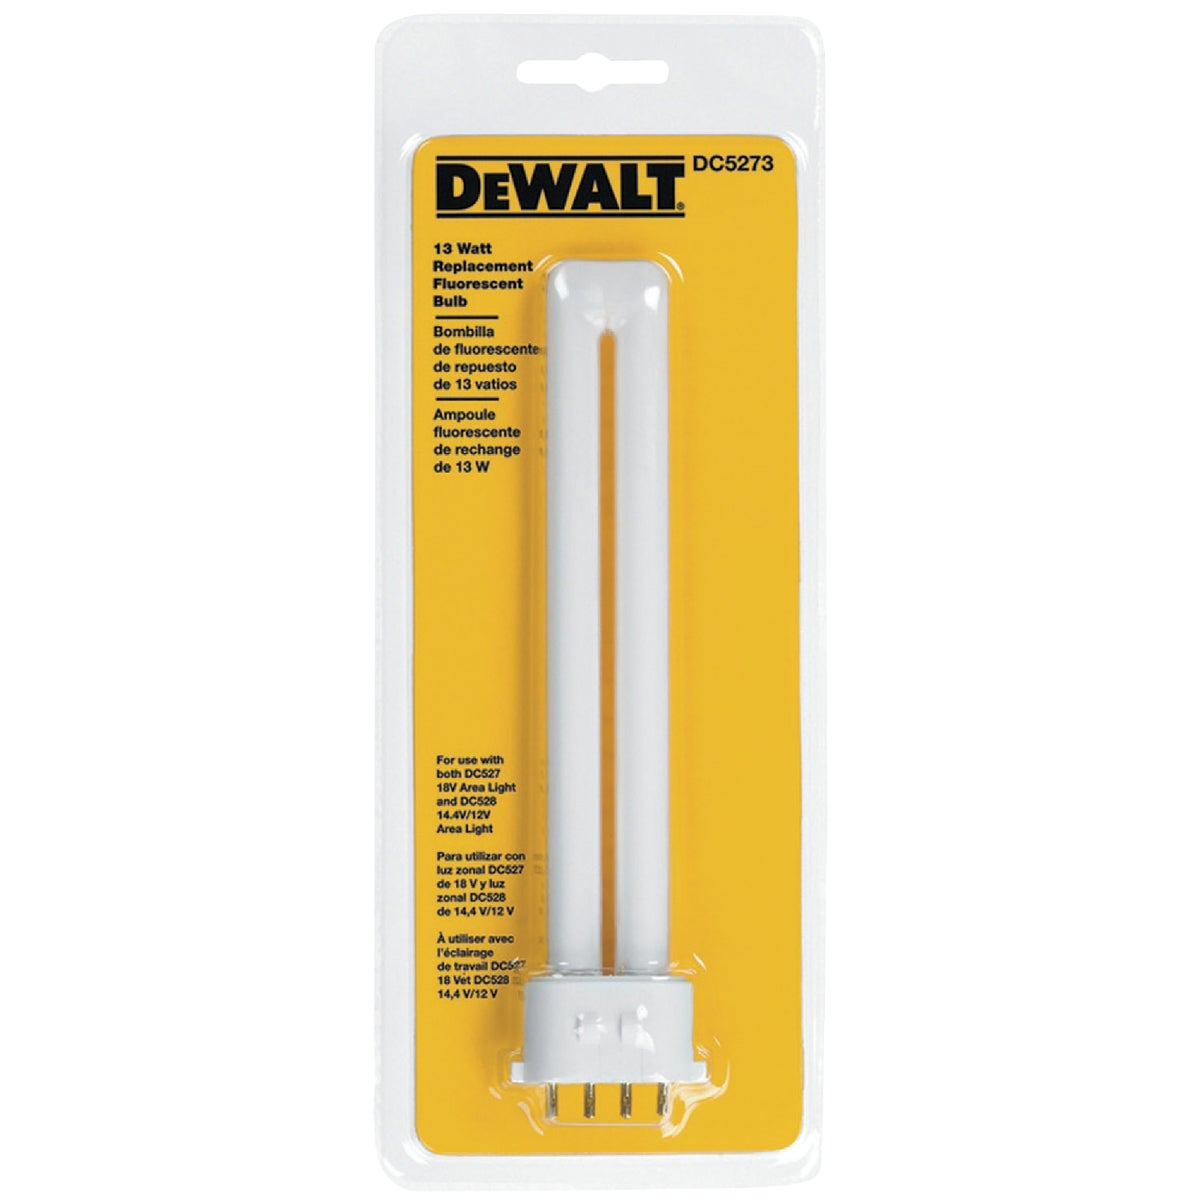 13W REPLACEMENT BULB